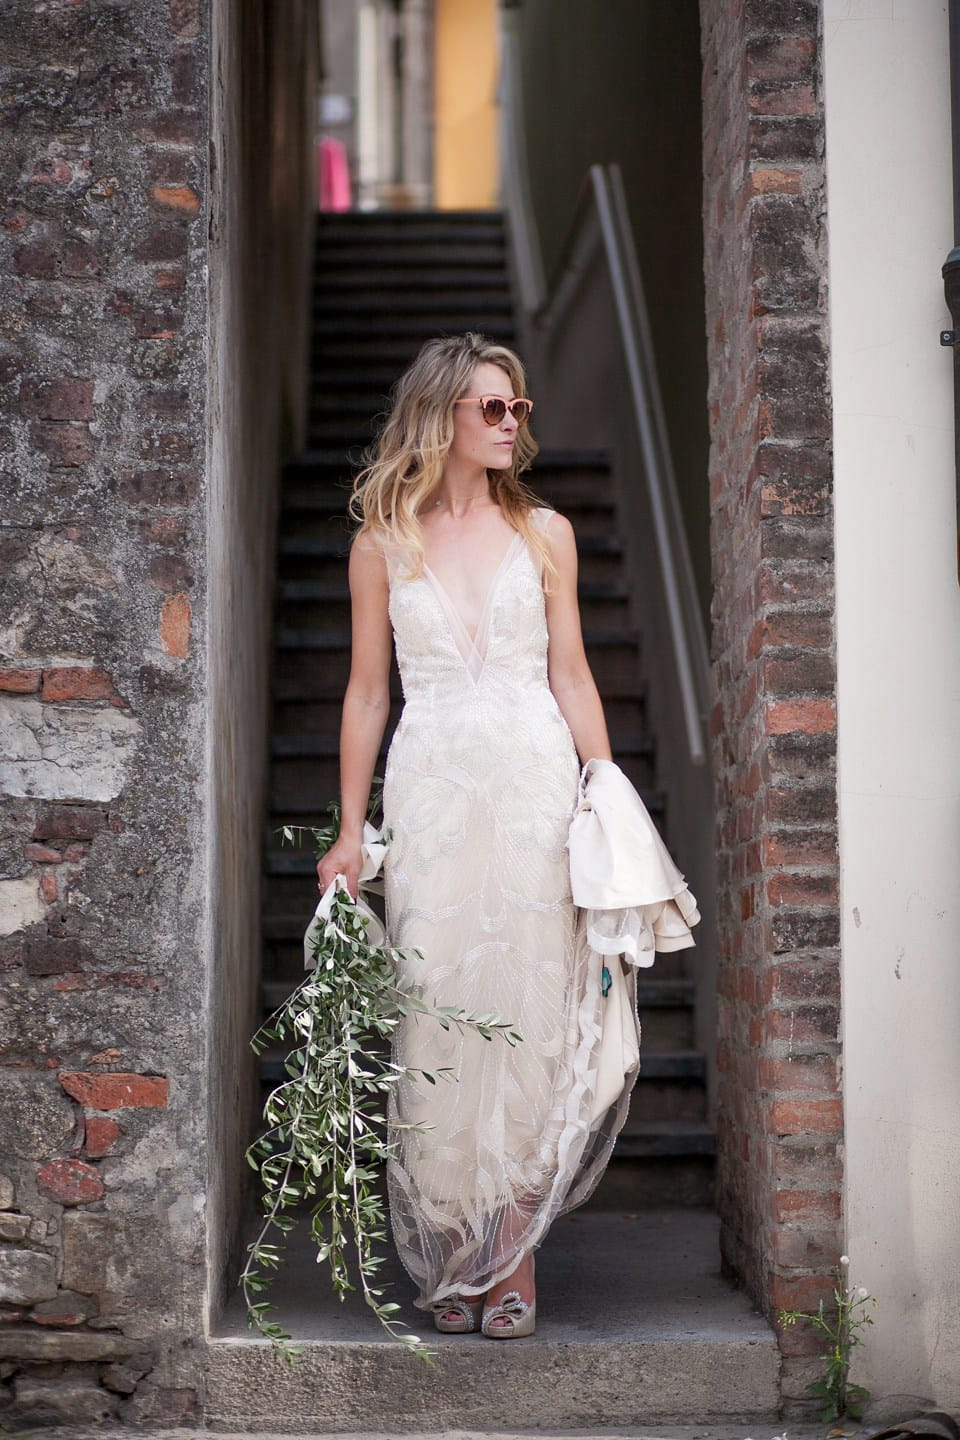 Super Cool Italian Wedding With Vintage Inspired Gown Love Maggie